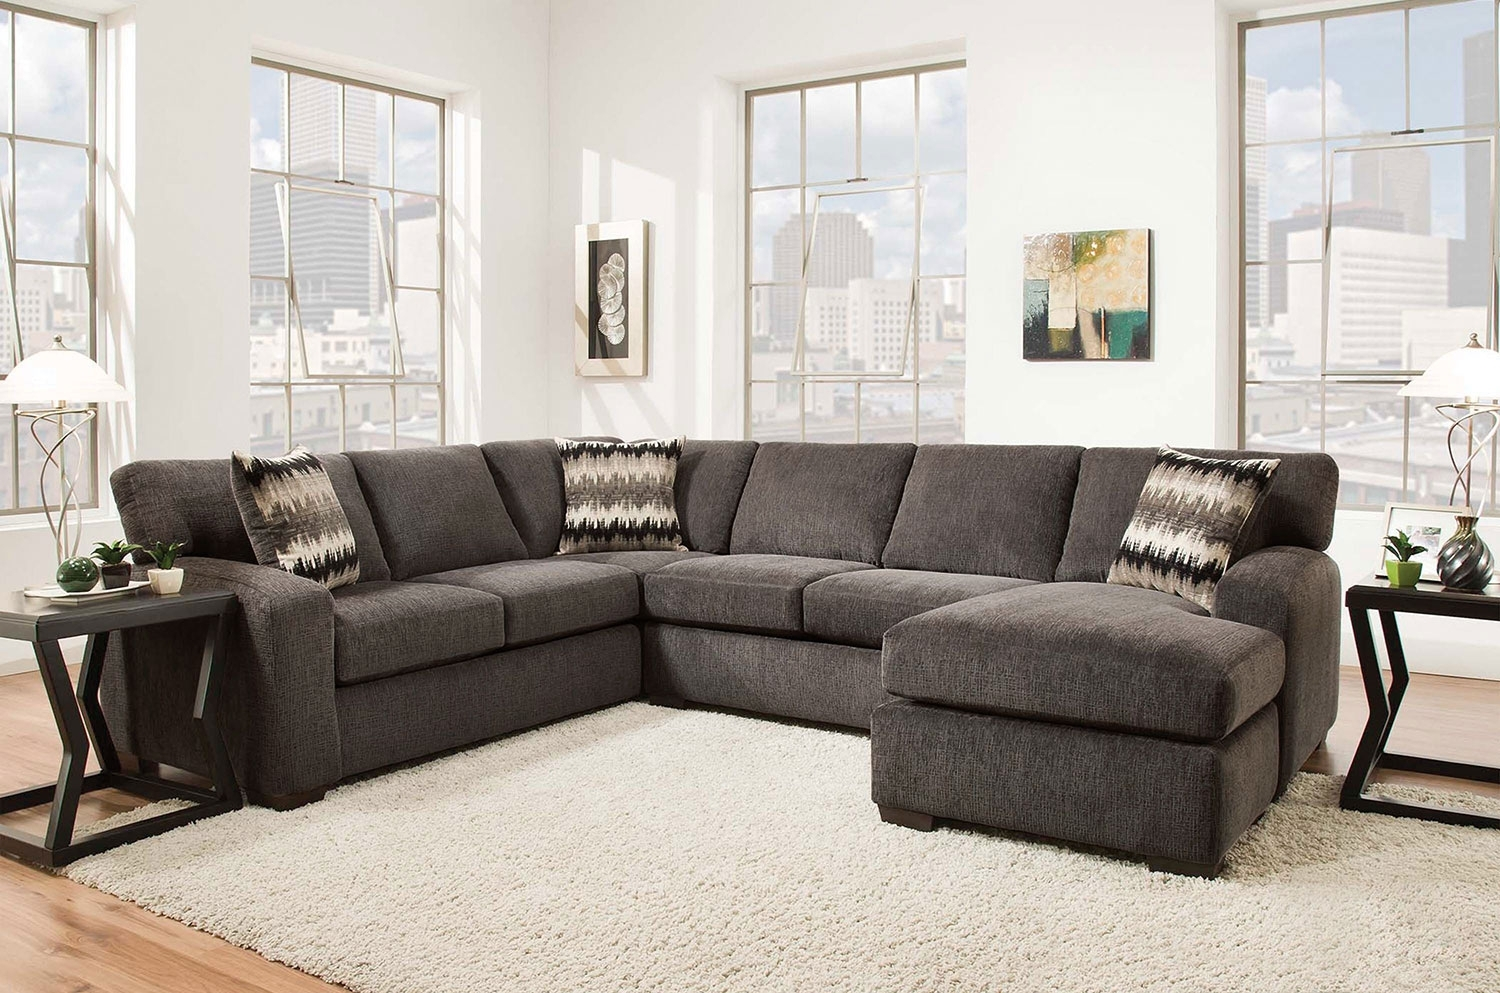 Fenella 2-Piece Right-Facing Sectional - Smoke | Levin Furniture for Sectional Sofas With Ottoman (Image 7 of 15)